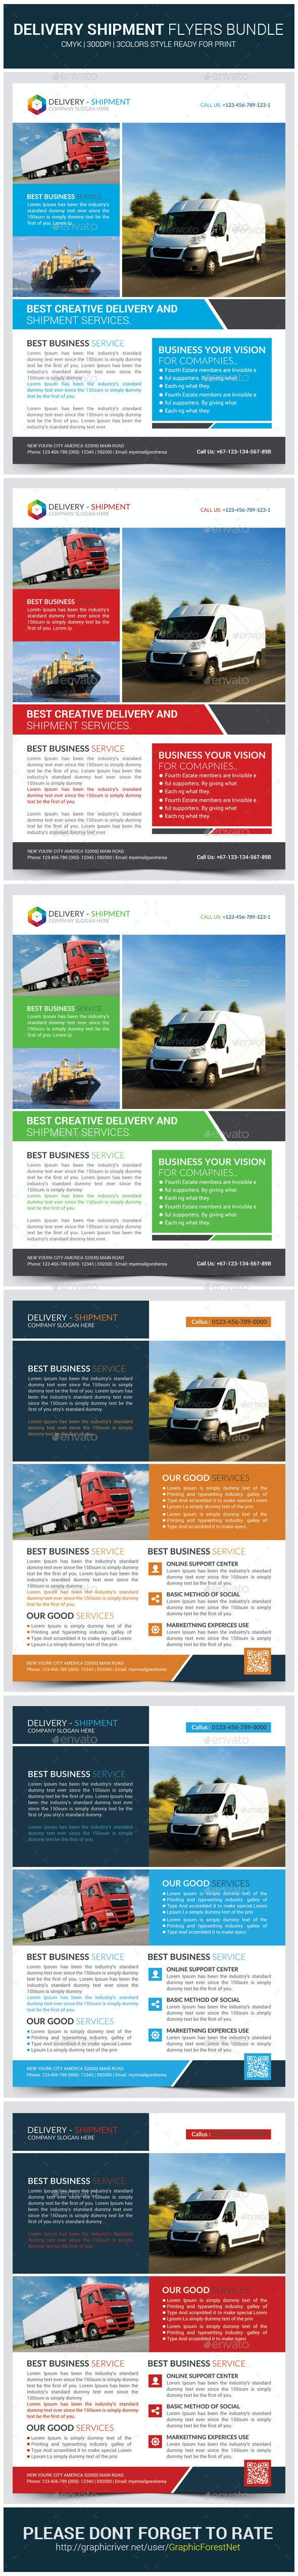 Delivery and Shipment Flyers Bundle Template  - Corporate Flyers